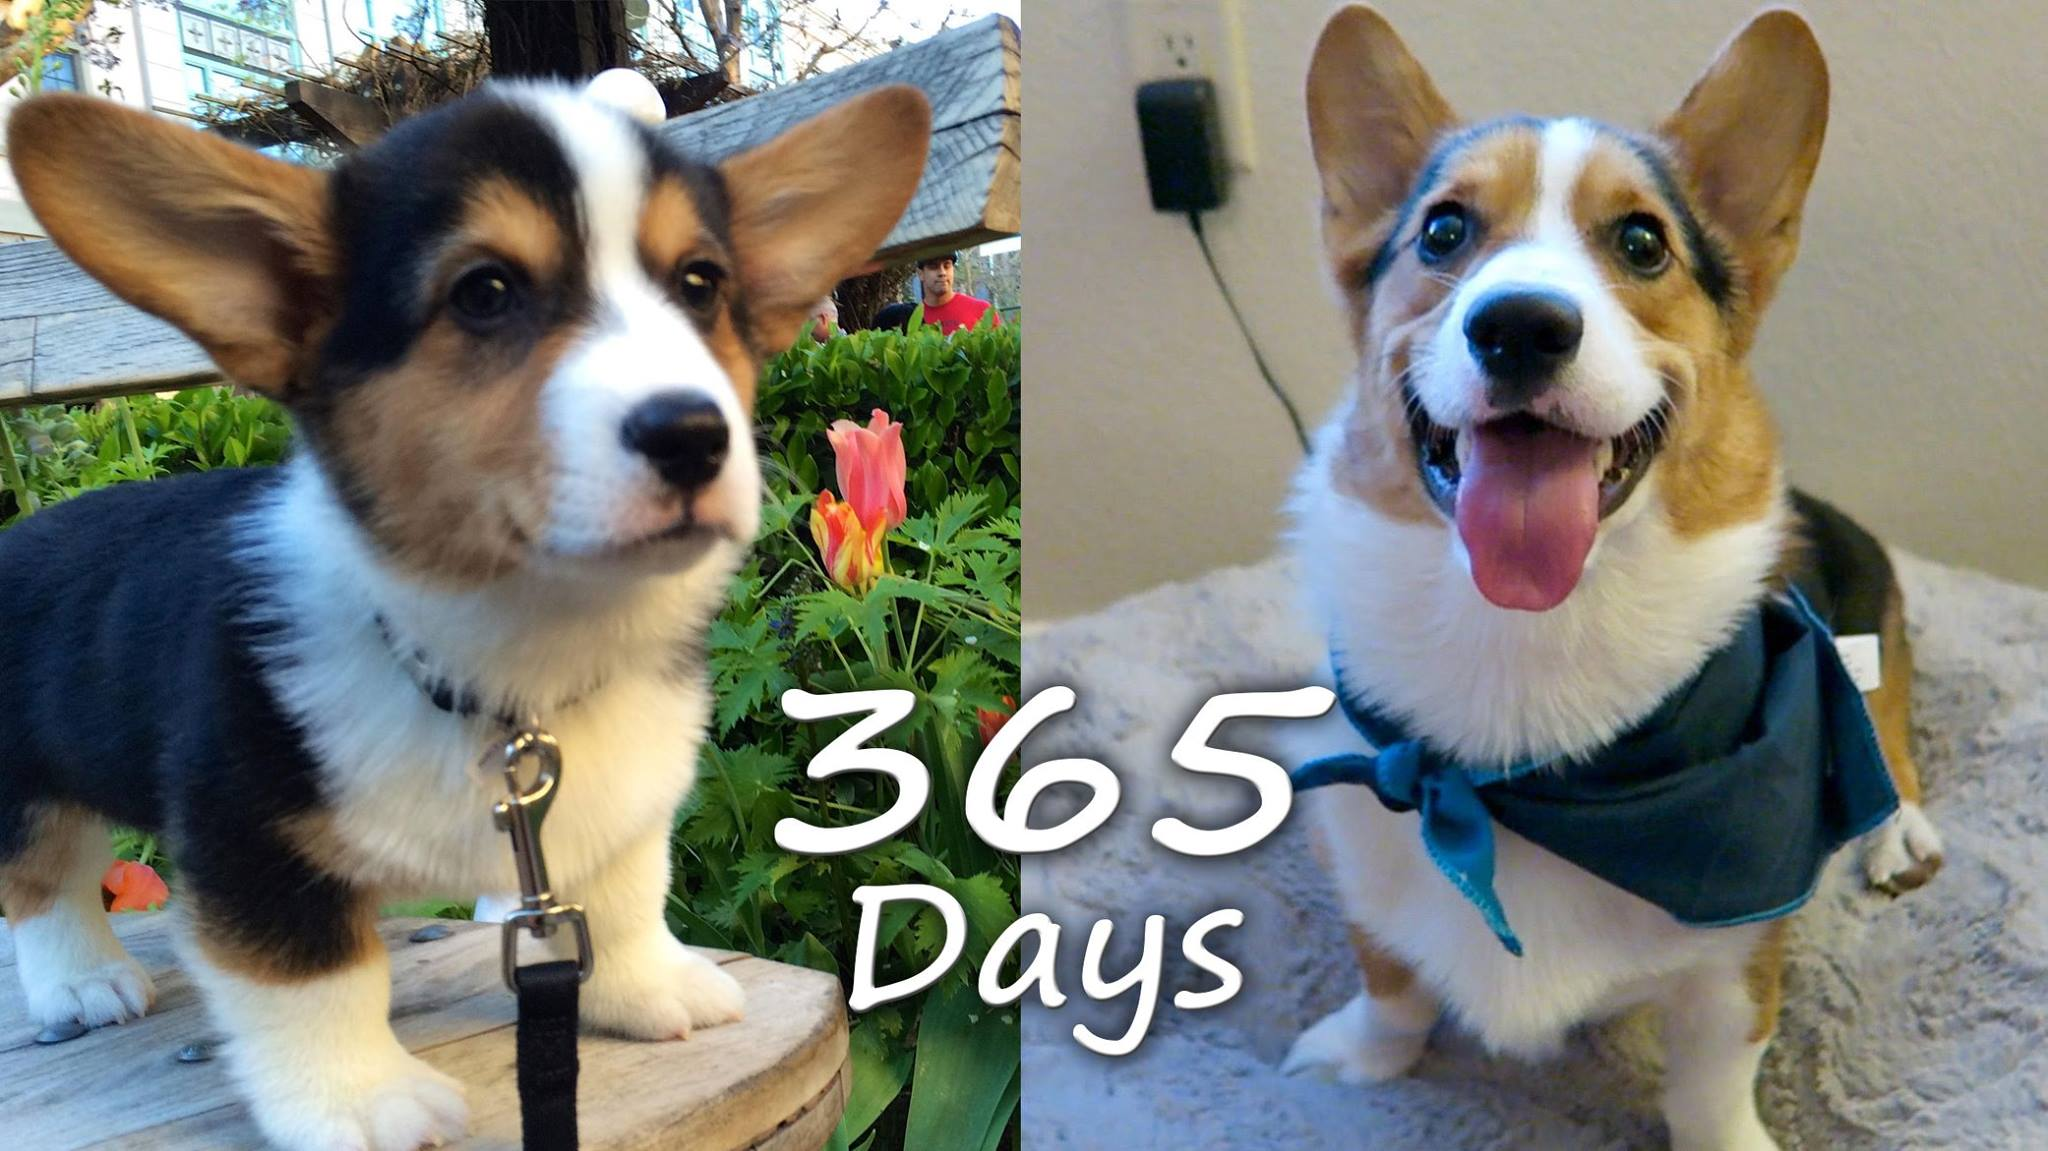 Puppyhood in 365 Days: Corgi Puppy Grows Up